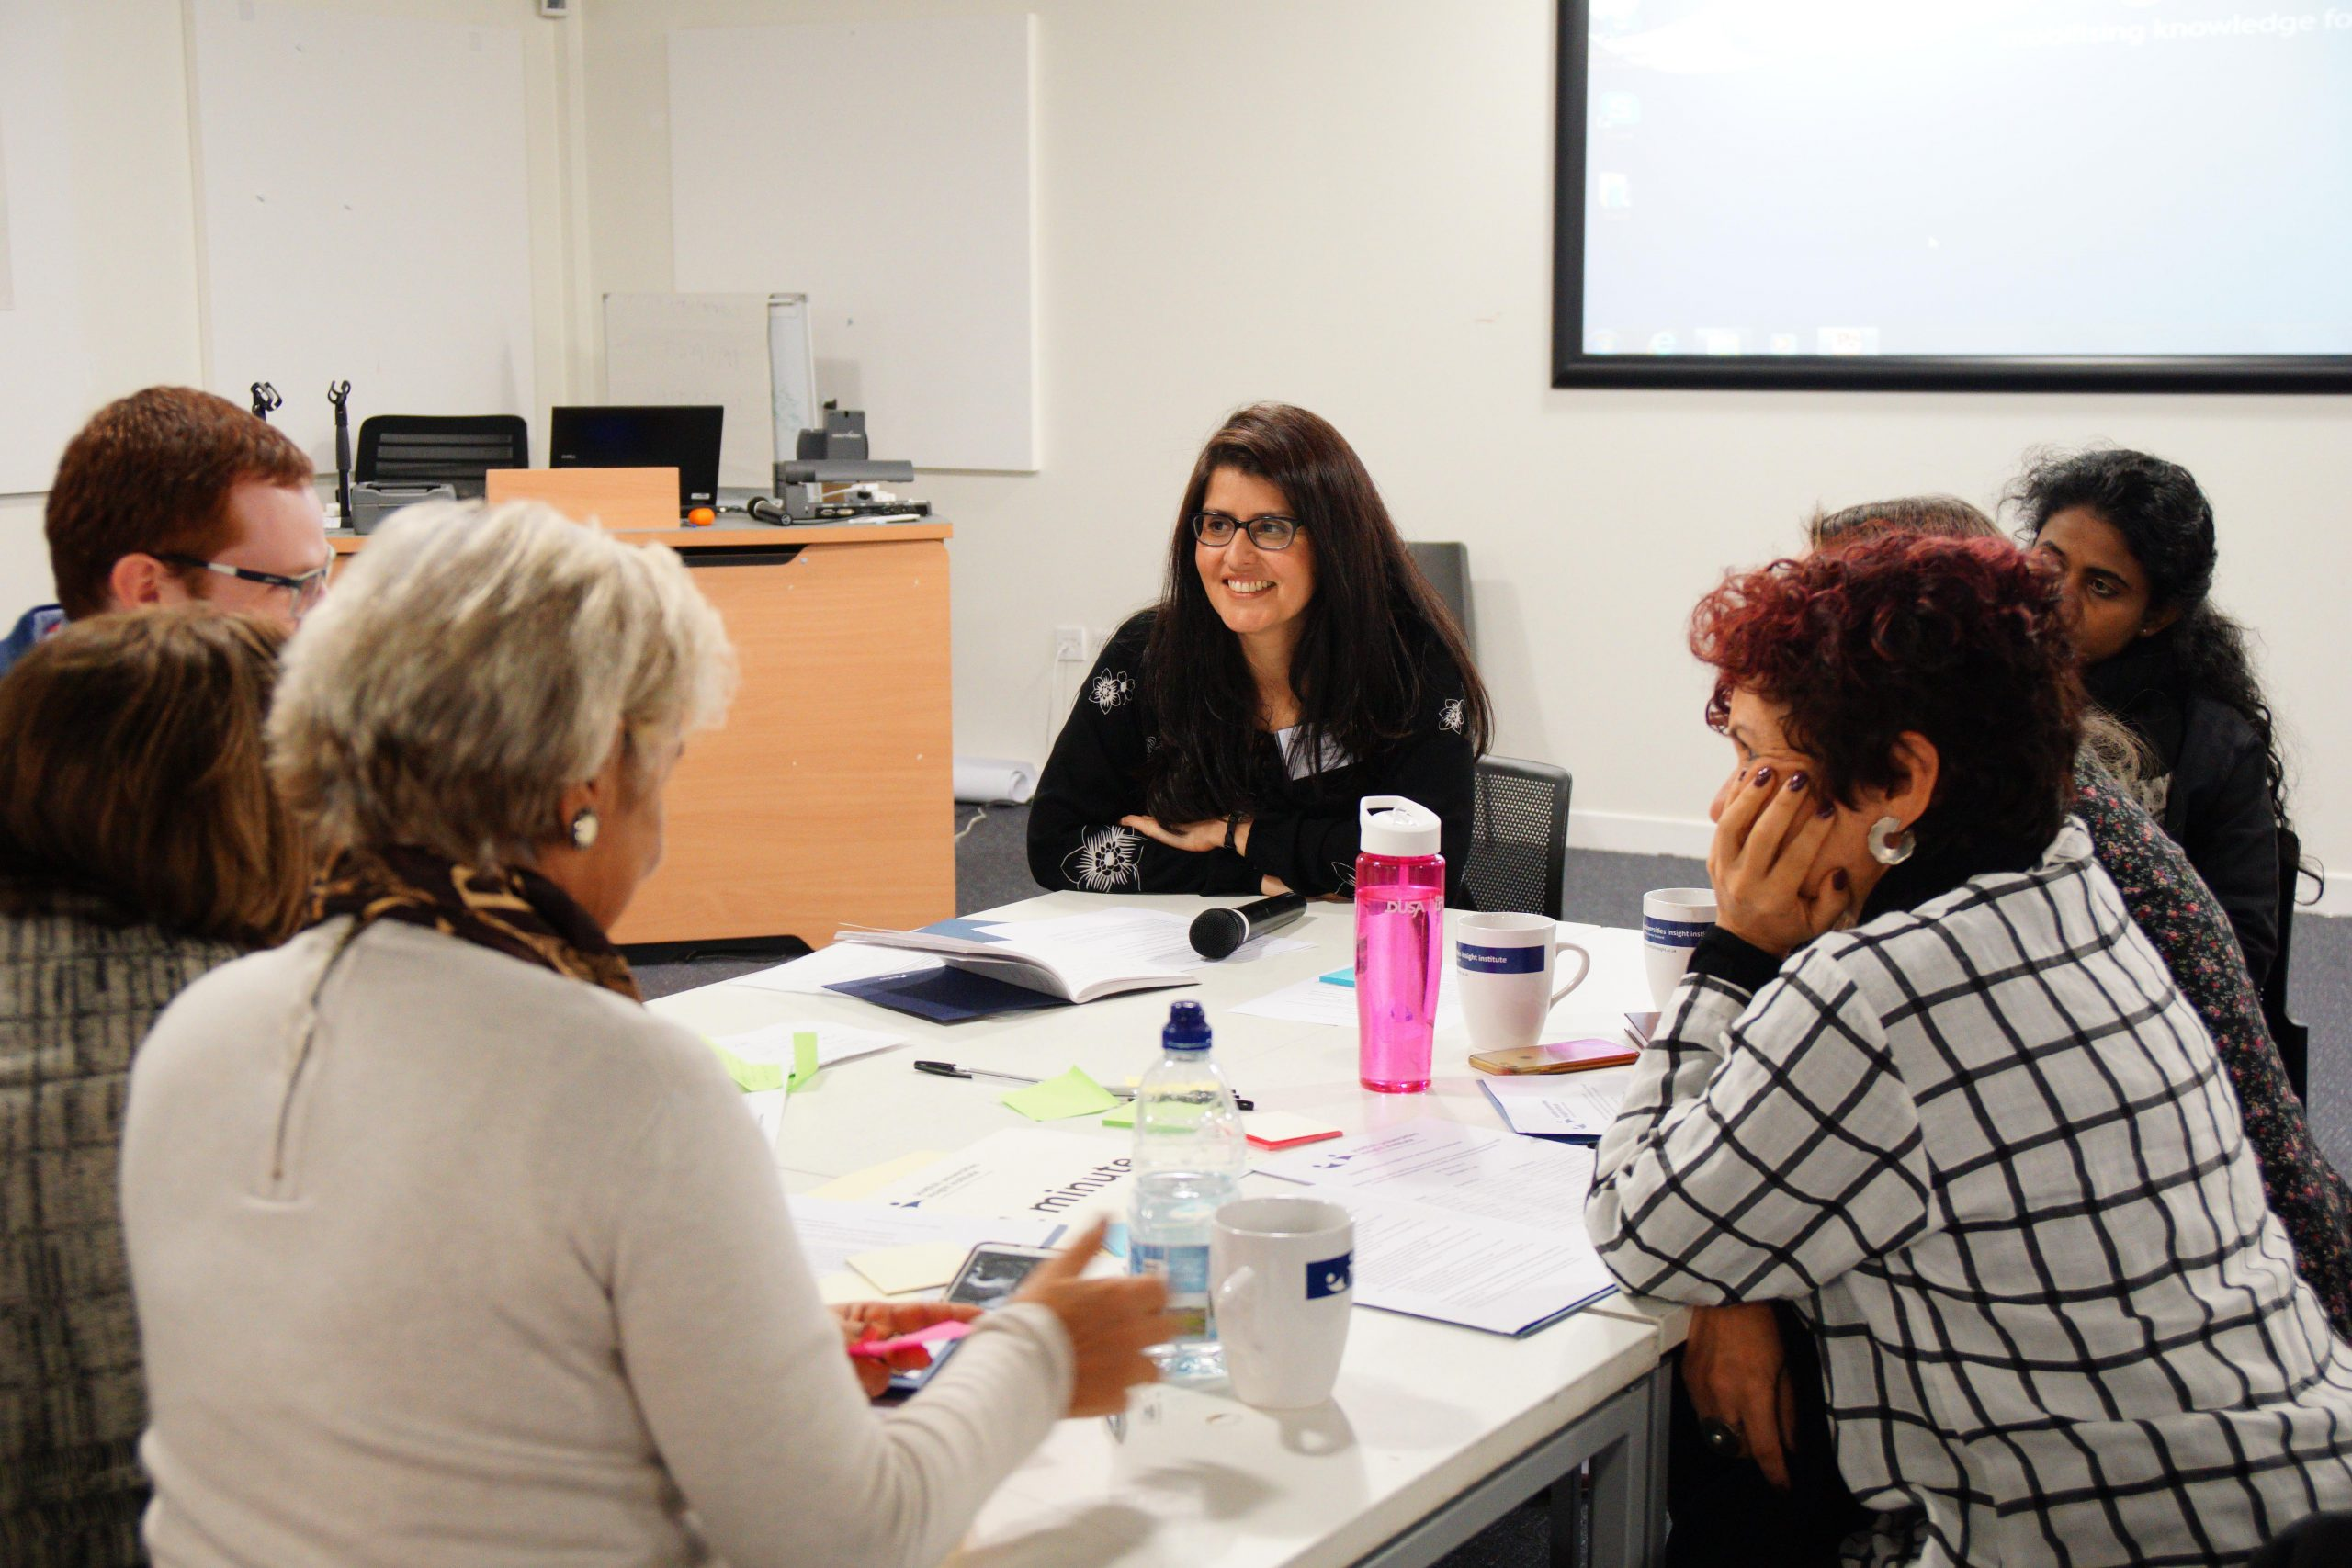 Dr Rodriguez hosting a knowledge exchange event in Scotland-Scottish News